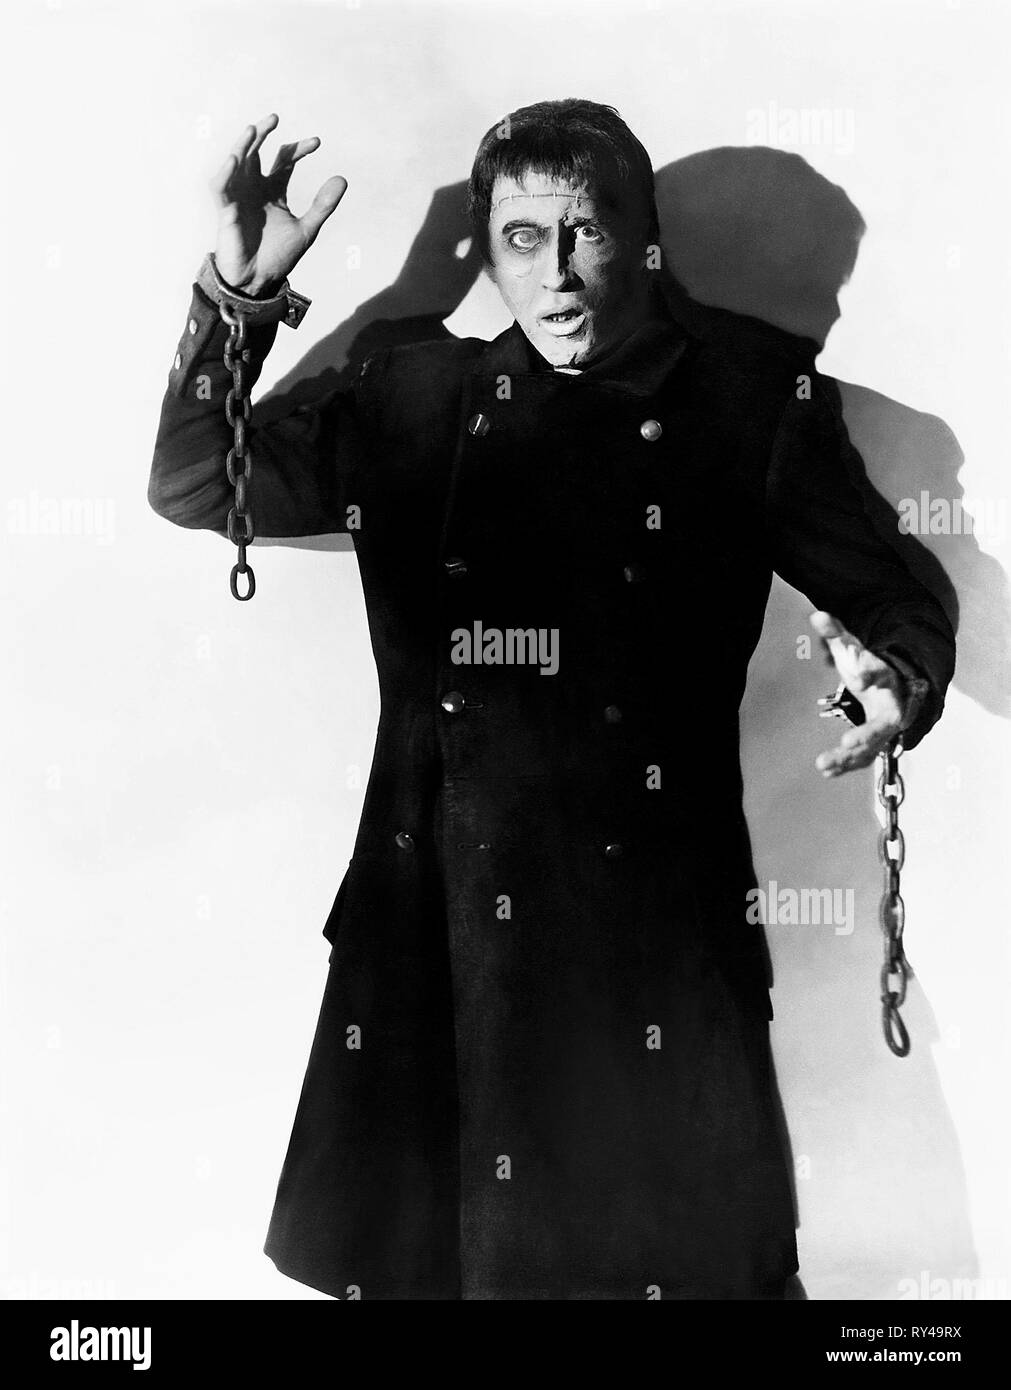 PETER CUSHING, THE CURSE OF FRANKENSTEIN, 1957 - Stock Image